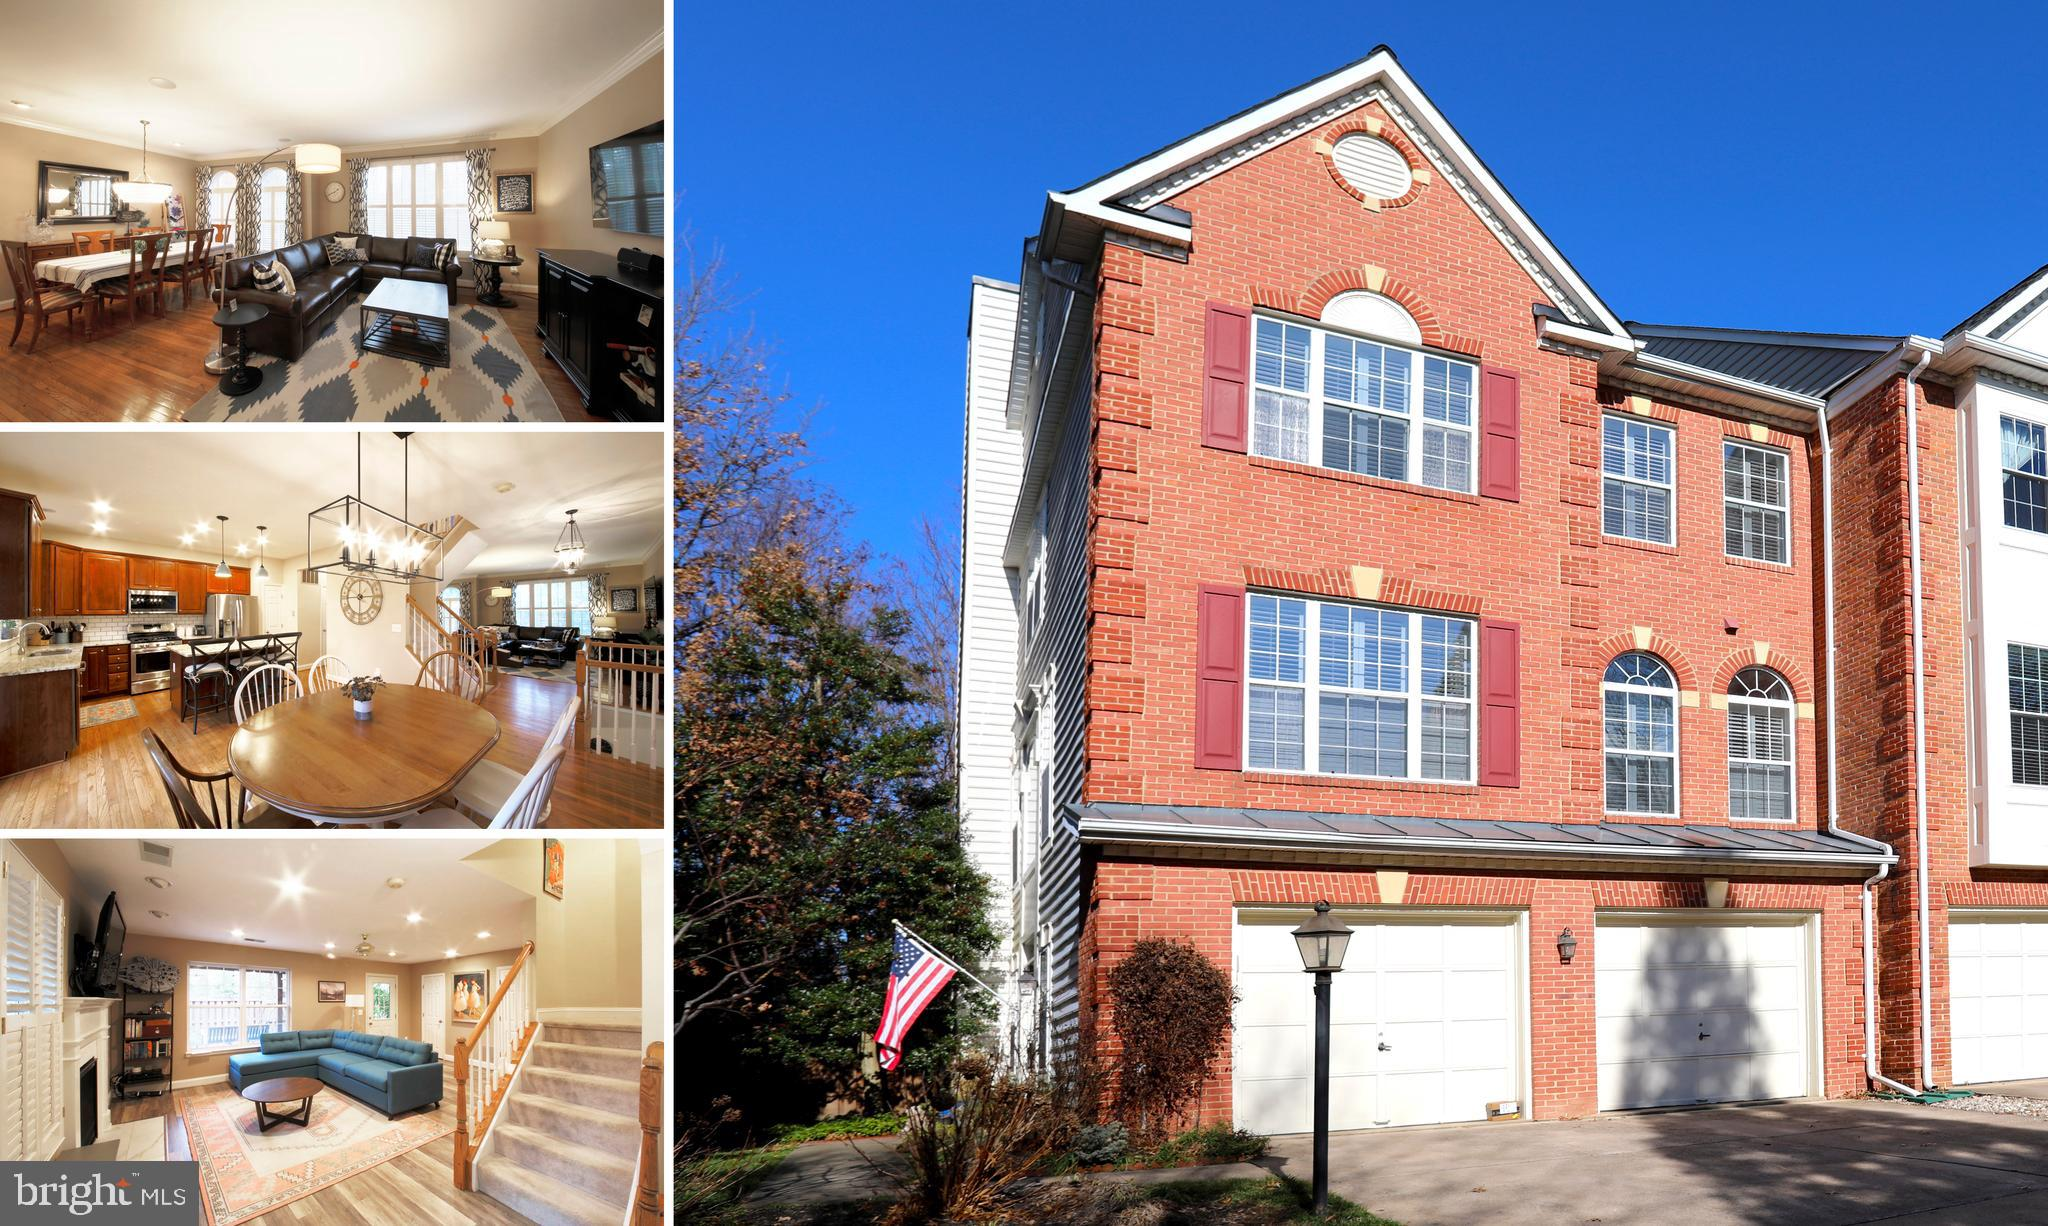 Rare opportunity to rent a home with so many unique features!! Beautifully updated large end unit town home with an open floor plan, less than a mile walk from the Vienna Metro on the Orange Line, close to Nottoway Park!!. Easy access to major commuter roads ~ I-66, I-495, Rt 123, Rt 50. The home goes to Mosby Woods, Thoreau and Oakton HS.The home has many beautiful features - Updated light fixtures, doors and hardware dazzle throughout! Walkout basement with garage entry, family room with beautiful gas fireplace, LVT flooring, half bath, washer/dryer and storage closets! Walk out from the family room on to a private, oversize, fenced backyard landscaped with a beautiful stonescape.The main level has an open floorplan with a large living and formal dining room combination, half bathroom and a large updated kitchen complete with granite countertops, cherry cabinets, SS appliances, and a large eating area that open out onto a private deck.The upper level has a large master bedroom with an attached walk in closet and beautifully updated master bathroom. Master bathroom has a shower stall, bathtub, double sinks, granite counters. The hallway connects to 2 bedrooms and a hall bath.  Owners have 2 bulldogs in the home currentlySORRY - PETS NOT PERMITTED. Available March 15th or so. Minimum lease term 1 year.